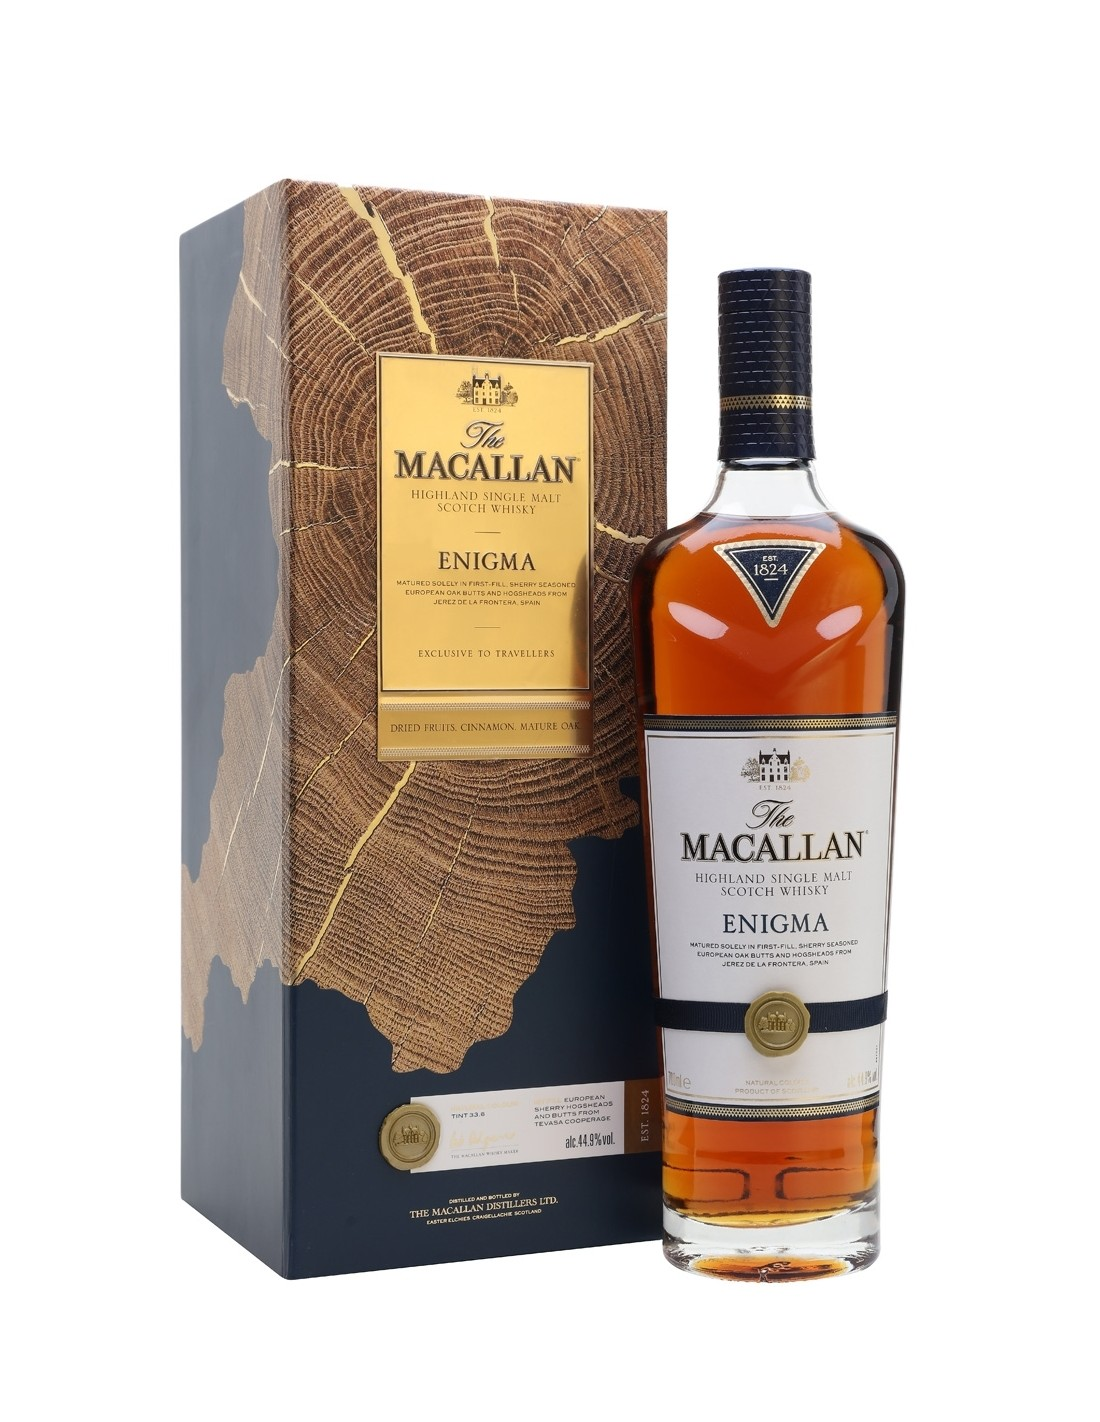 Whisky Macallan Enigma, 44.9% alc., 0.7L, Scotia